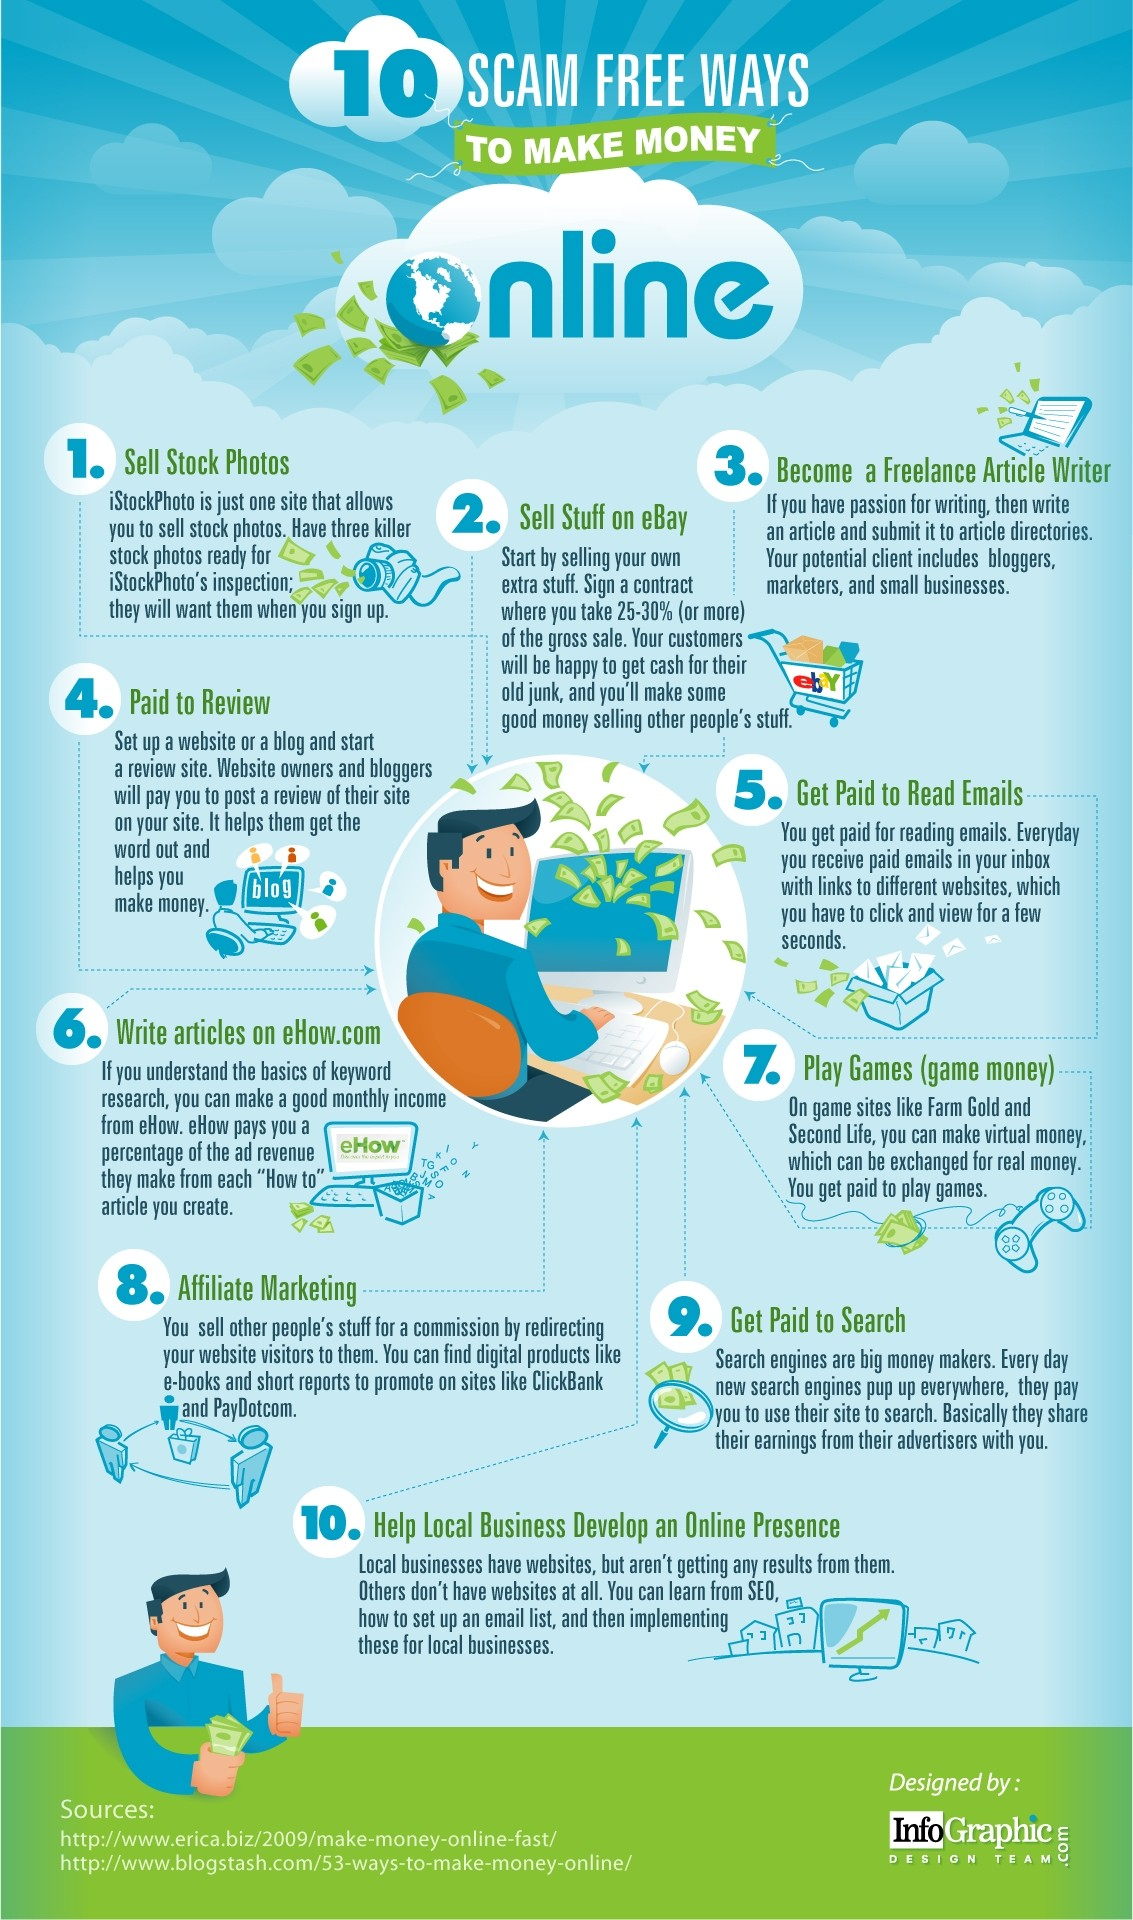 10 Scam Free Ways to Make Money Online - infographic